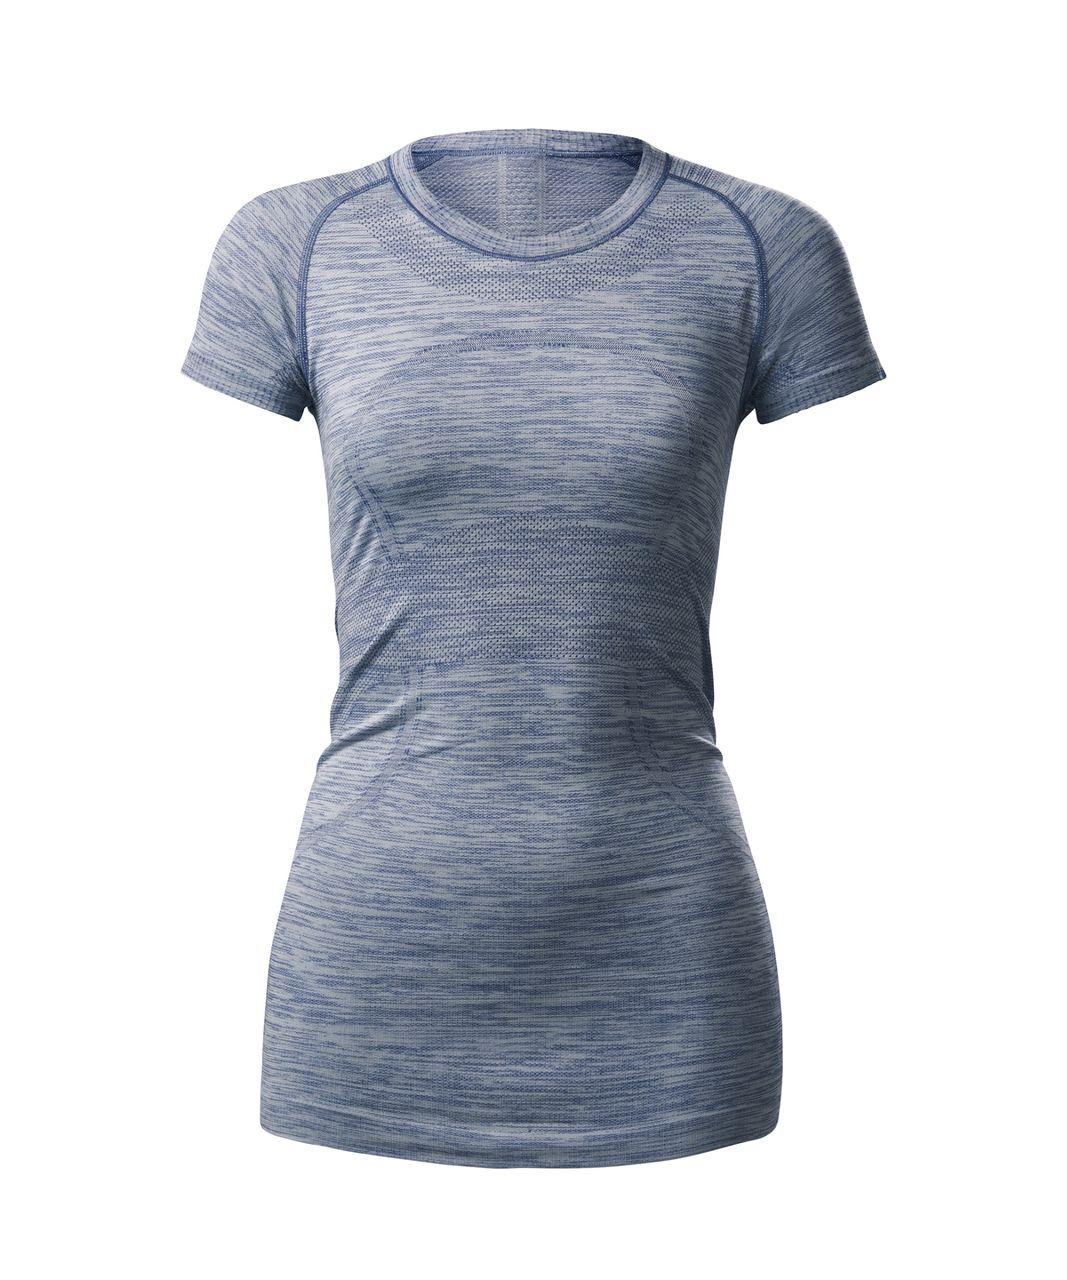 Lululemon Swiftly Tech Short Sleeve Crew - Heathered Hero Blue